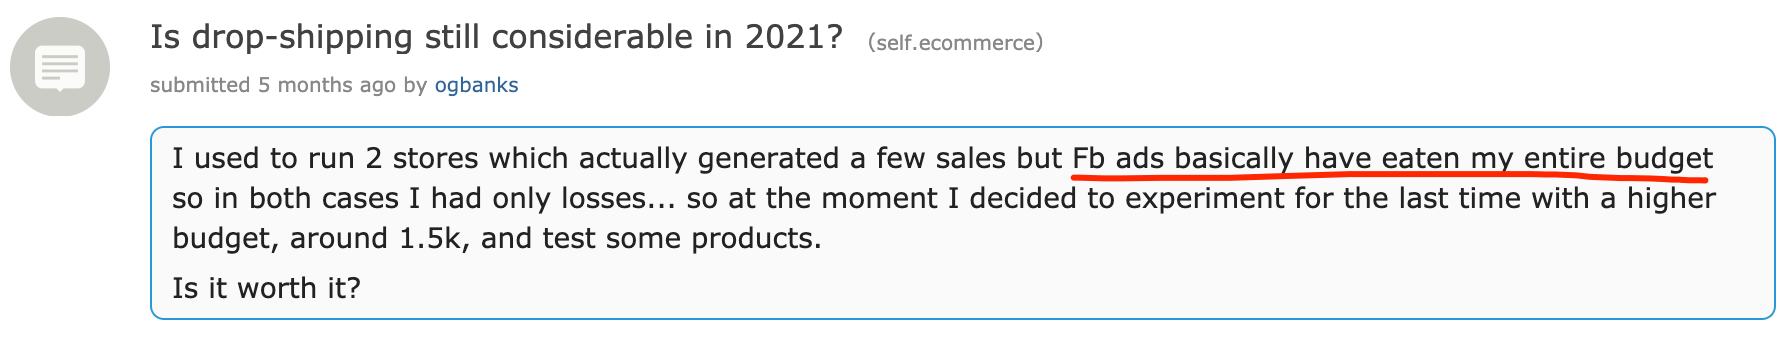 How to Start an Online Business in 2021 image7